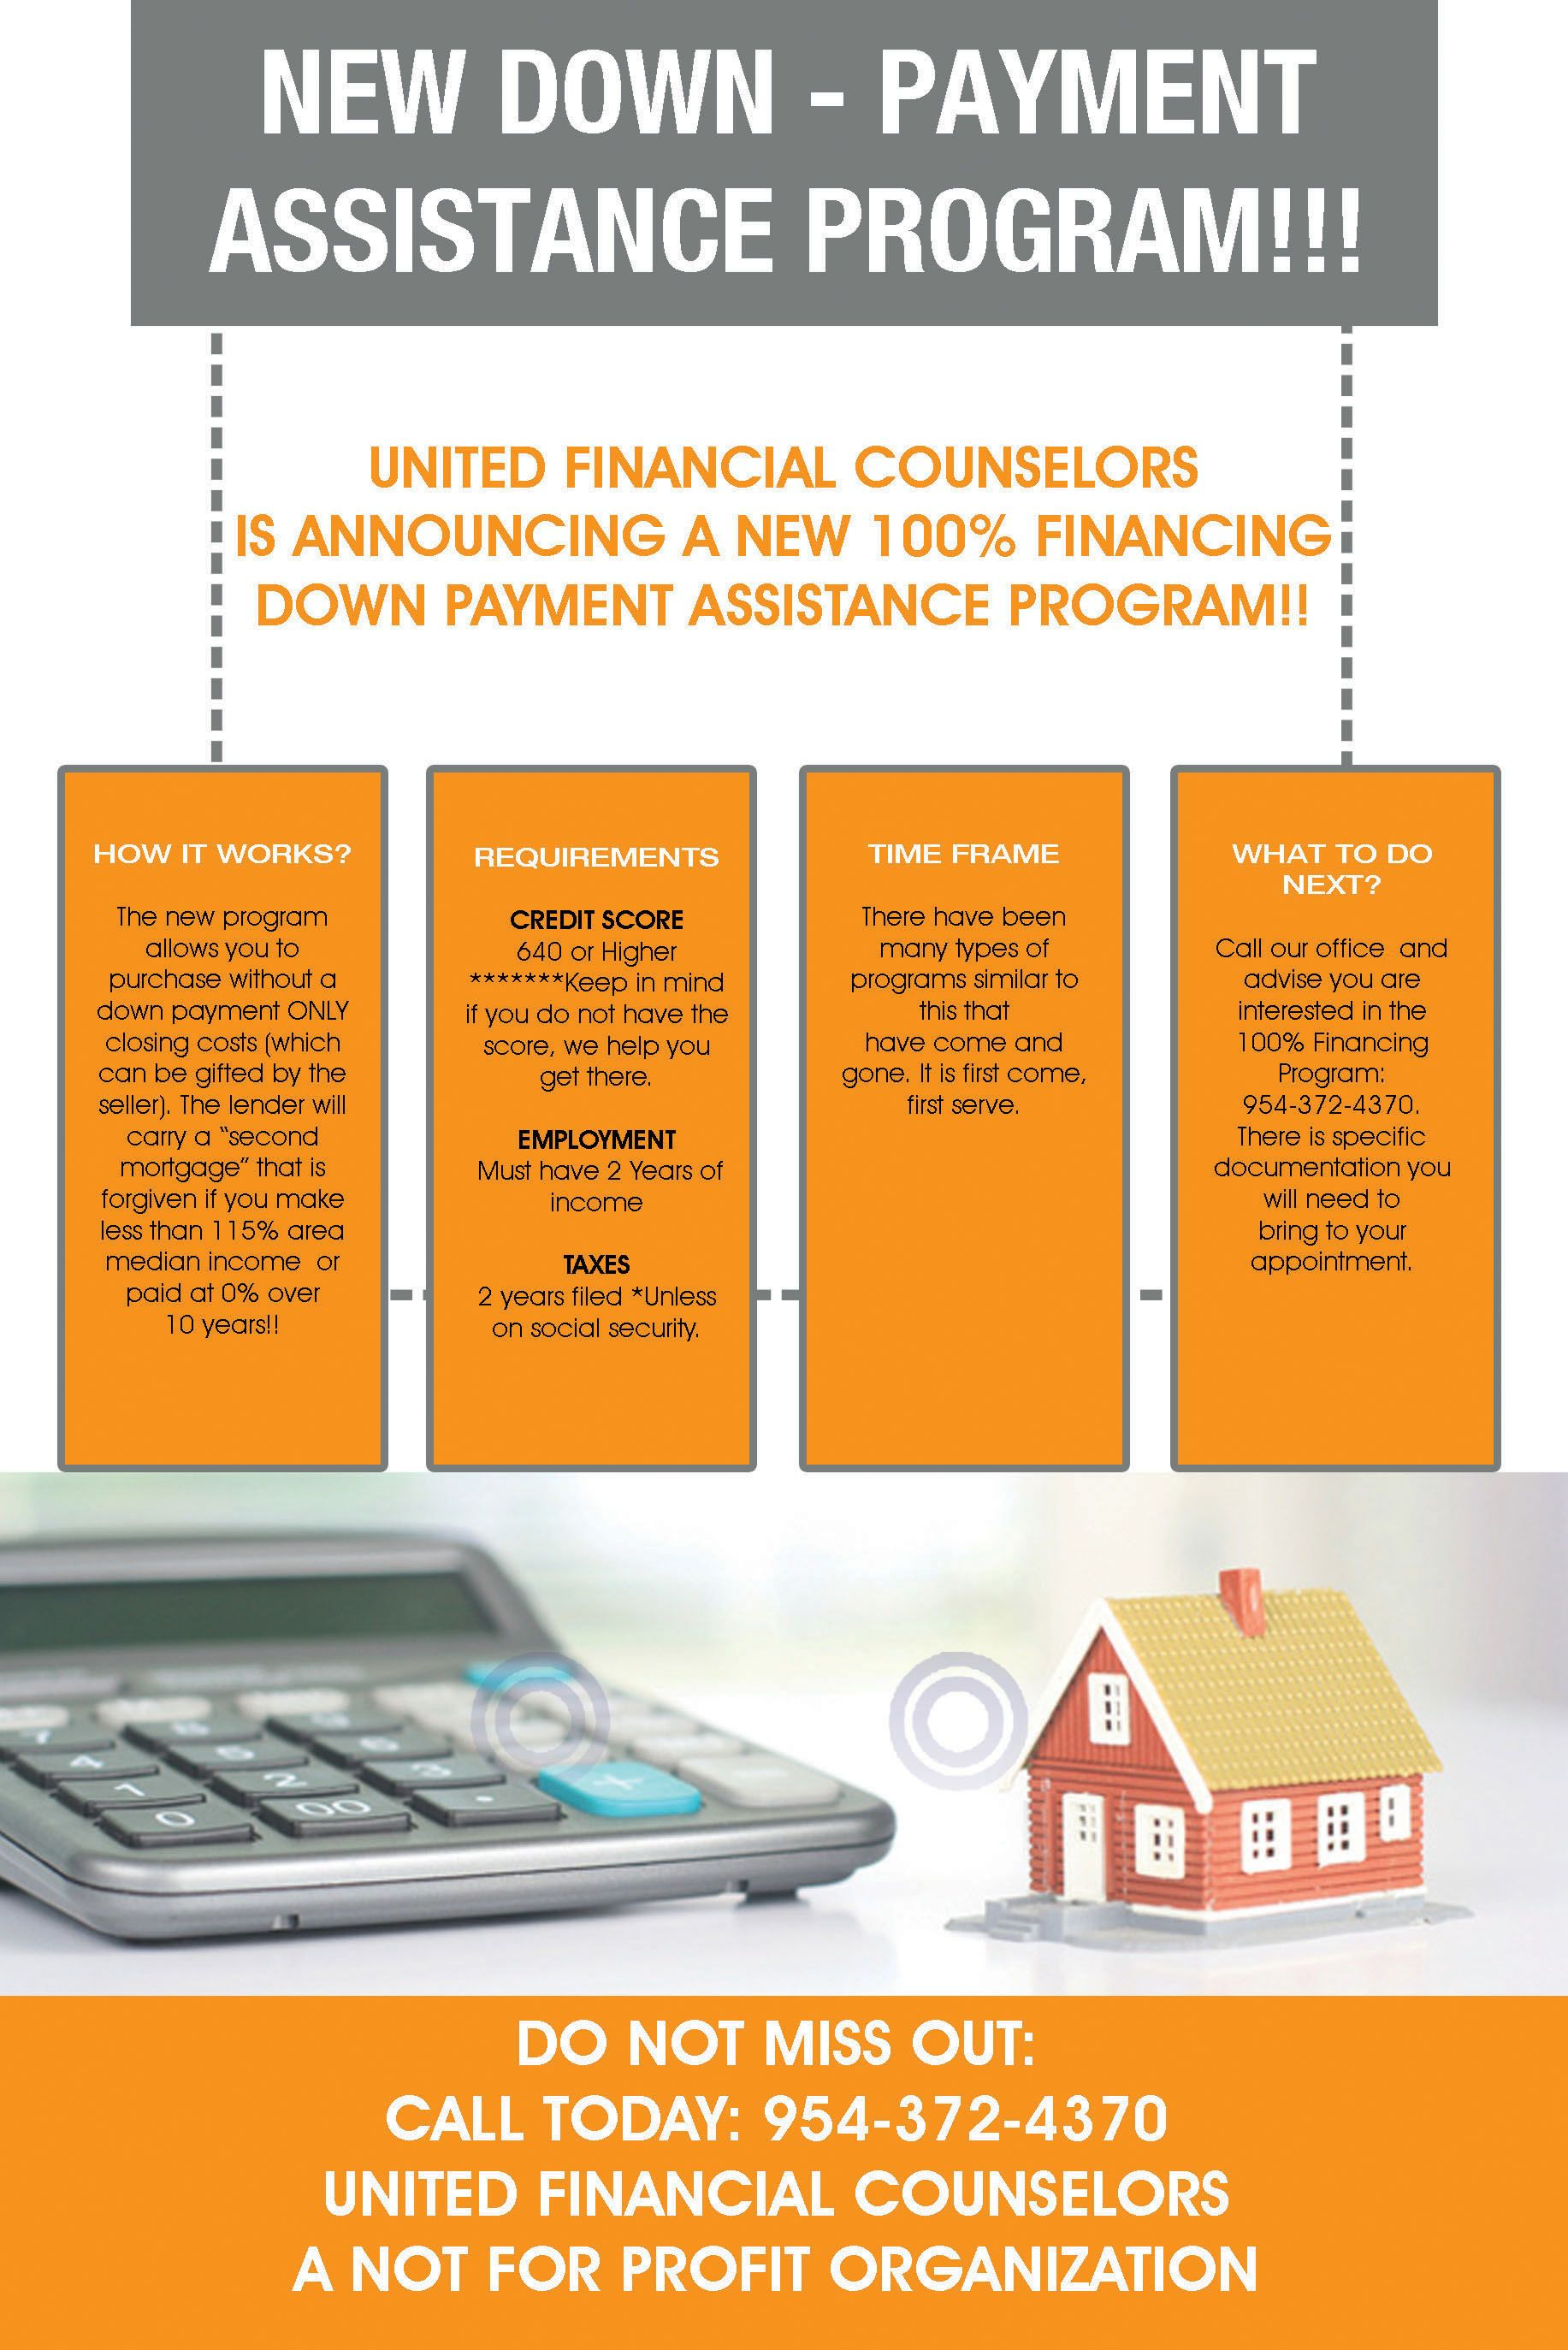 Pin By Jhonsam On United Counselors Down Payment Assistance